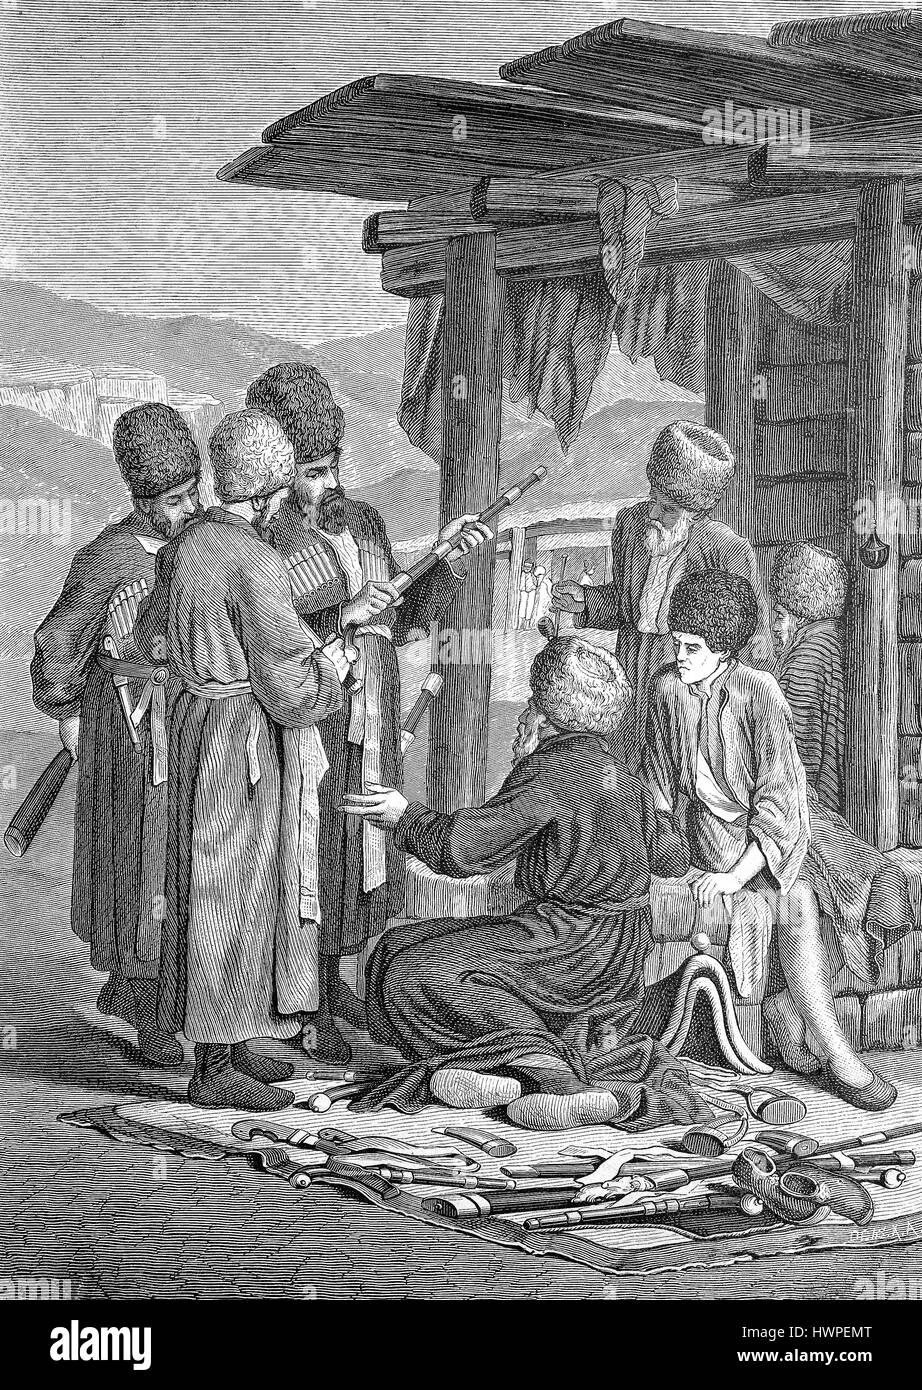 Arms dealers in the Caucasus, Reproduction of an original woodcut from the year 1882, digital improved - Stock Image